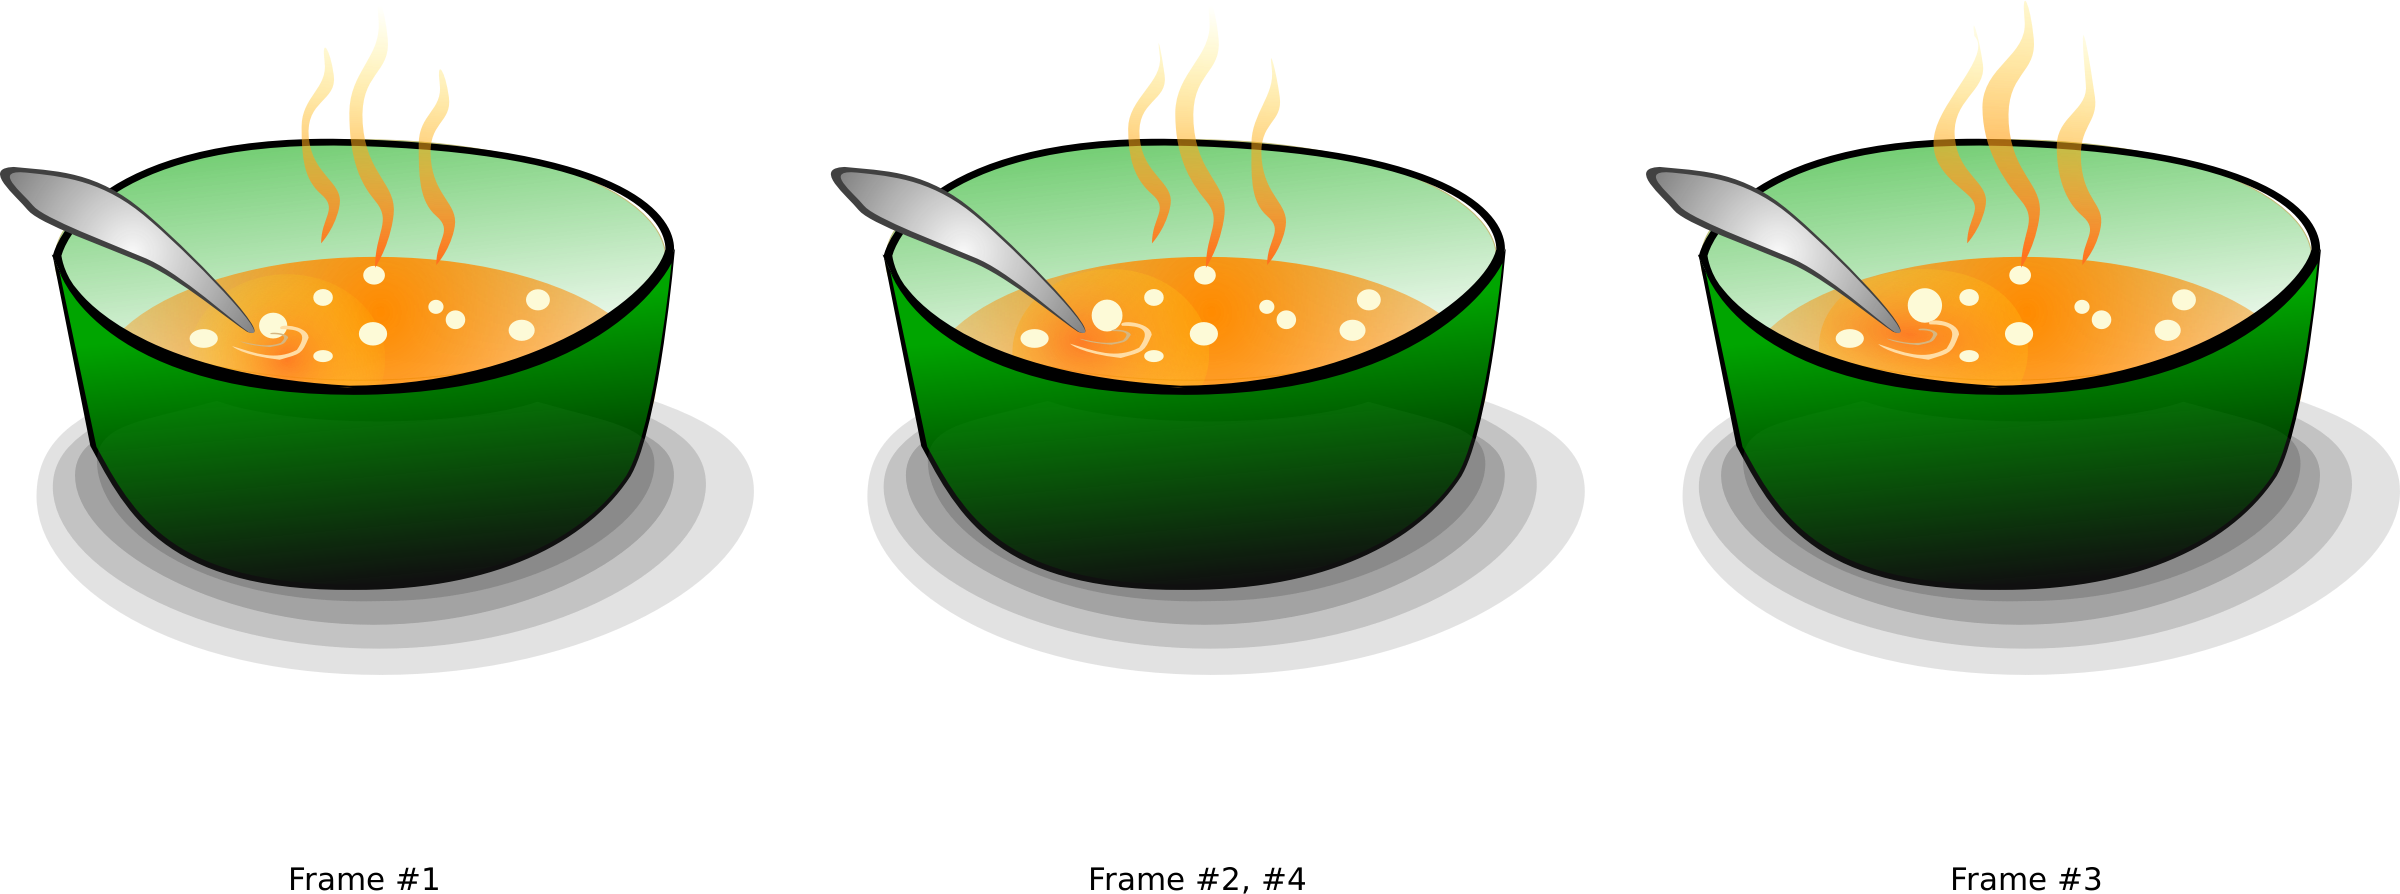 For animation icons png. Dishes clipart soup bowl